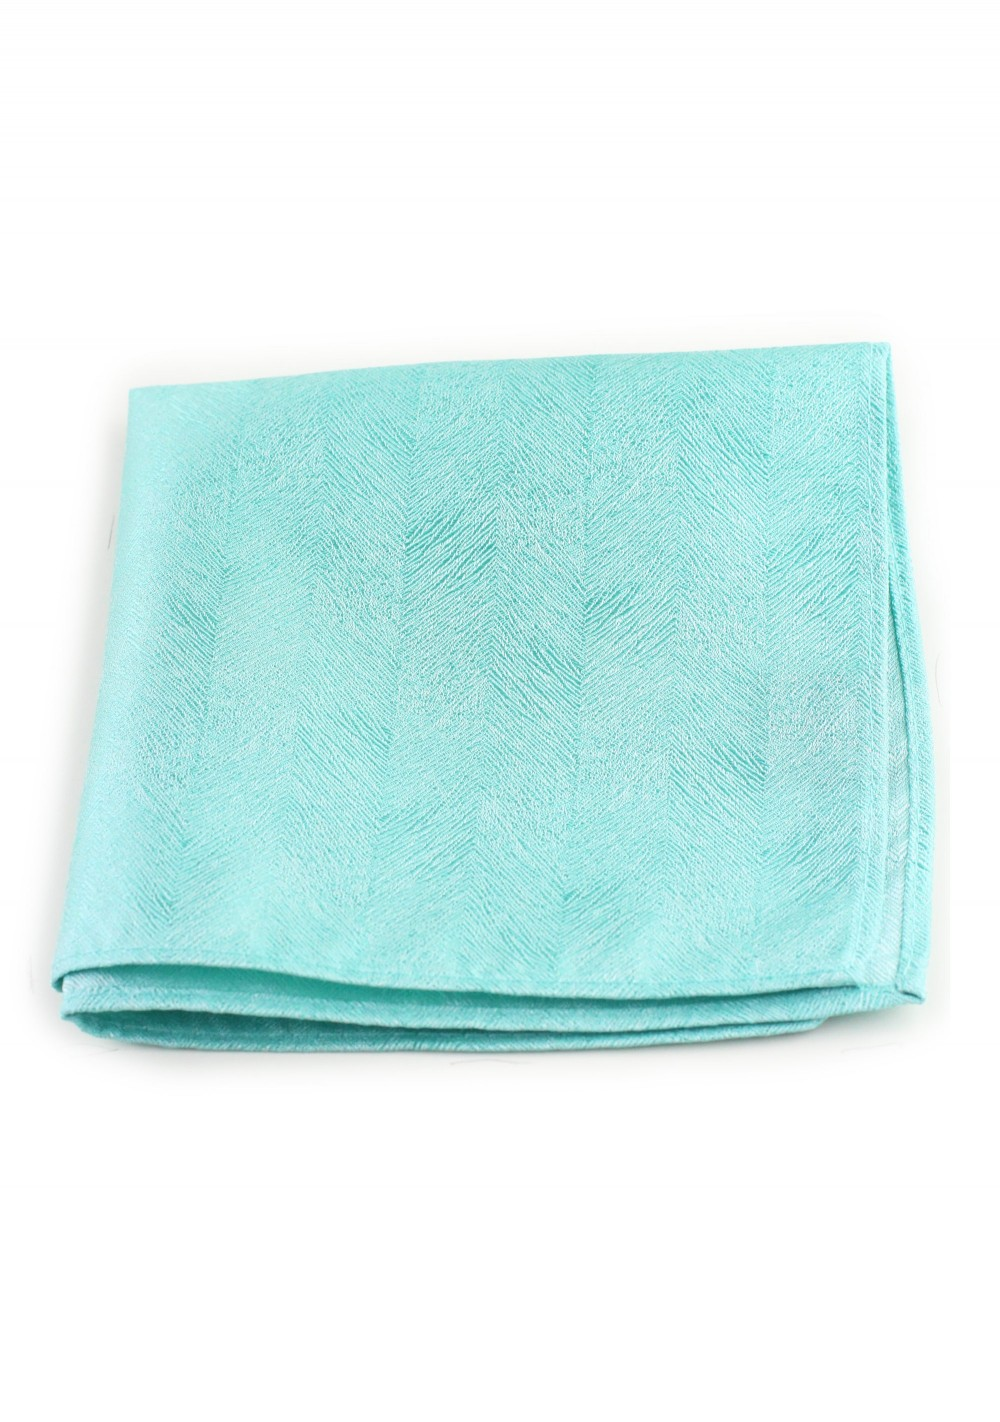 Wood Grain Textured Pocket Square Hanky in Spa